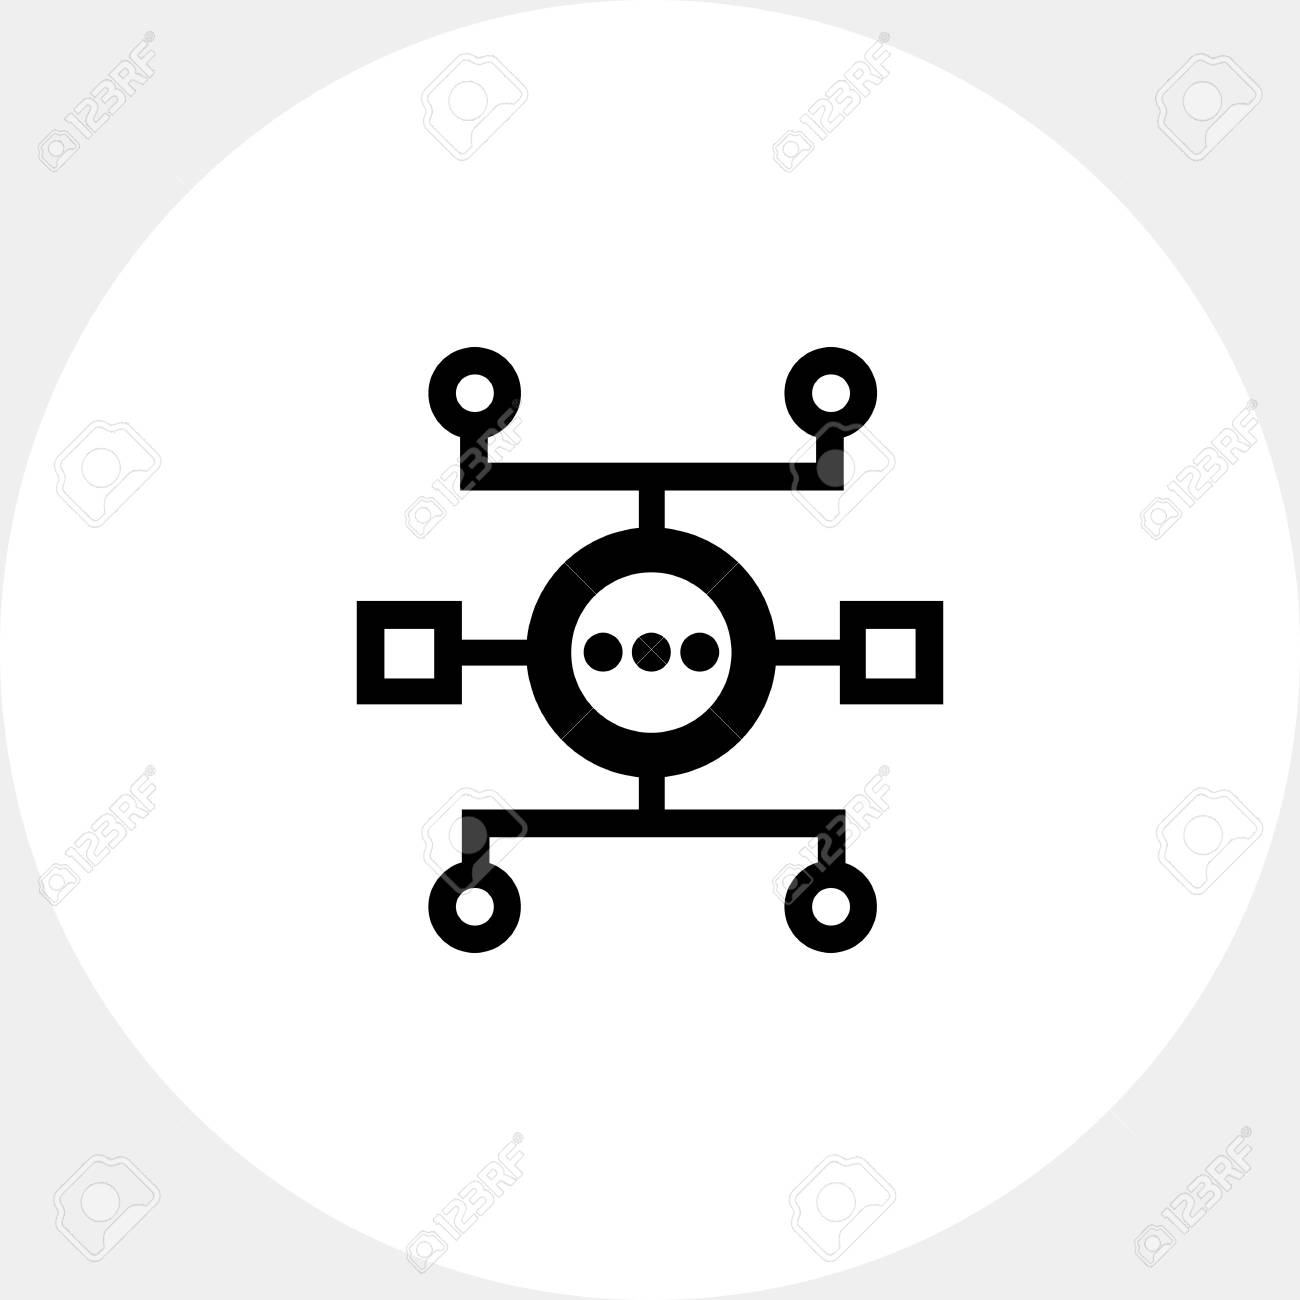 data structure simple icon royalty free cliparts vectors and stock illustration image 70925119 123rf com